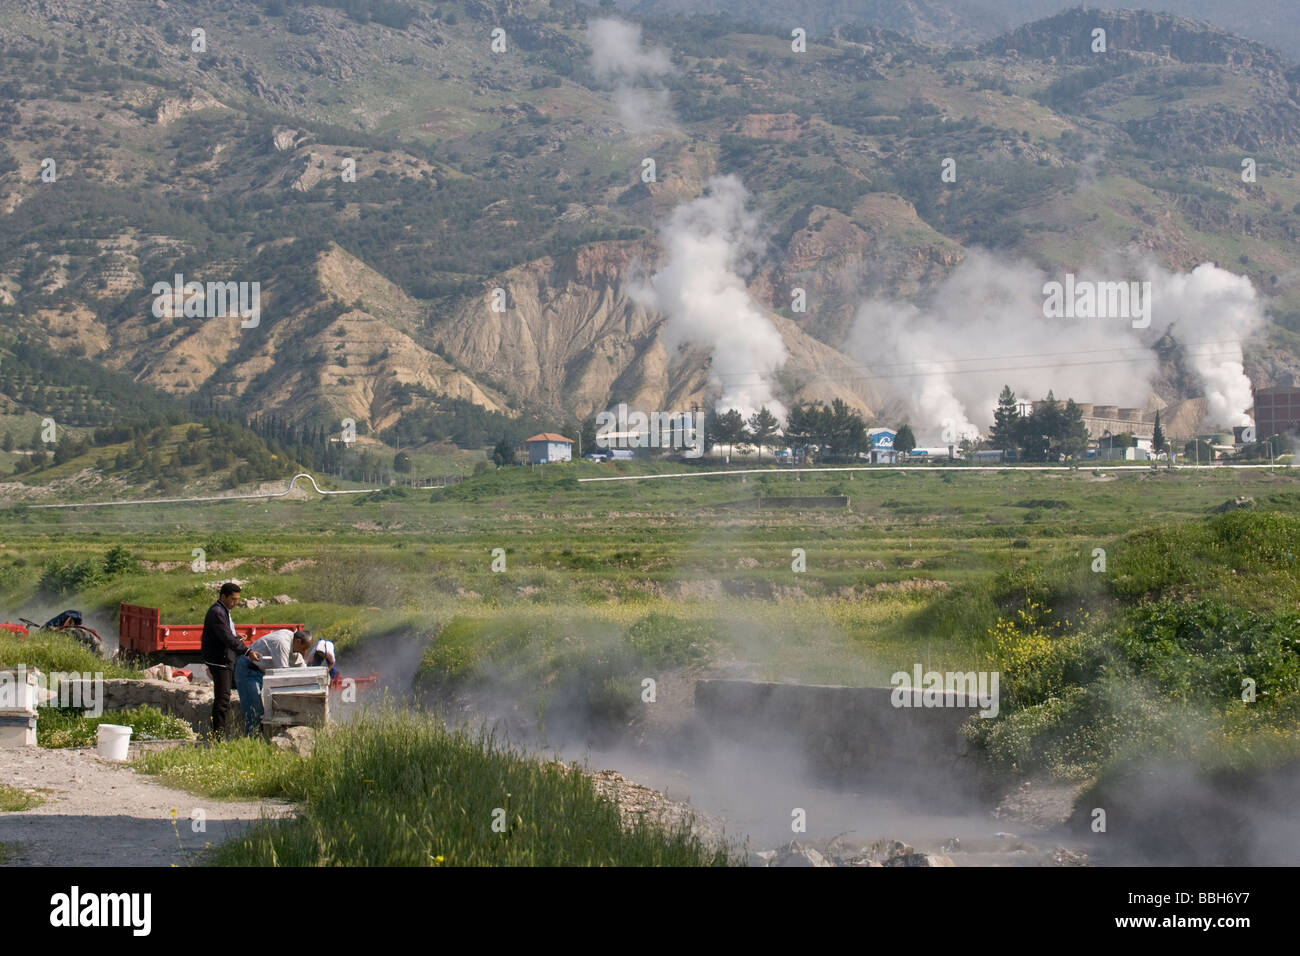 Bee keepers in Turkey cleaning their wooden hives in a stream heated by thernal steam vents - Stock Image